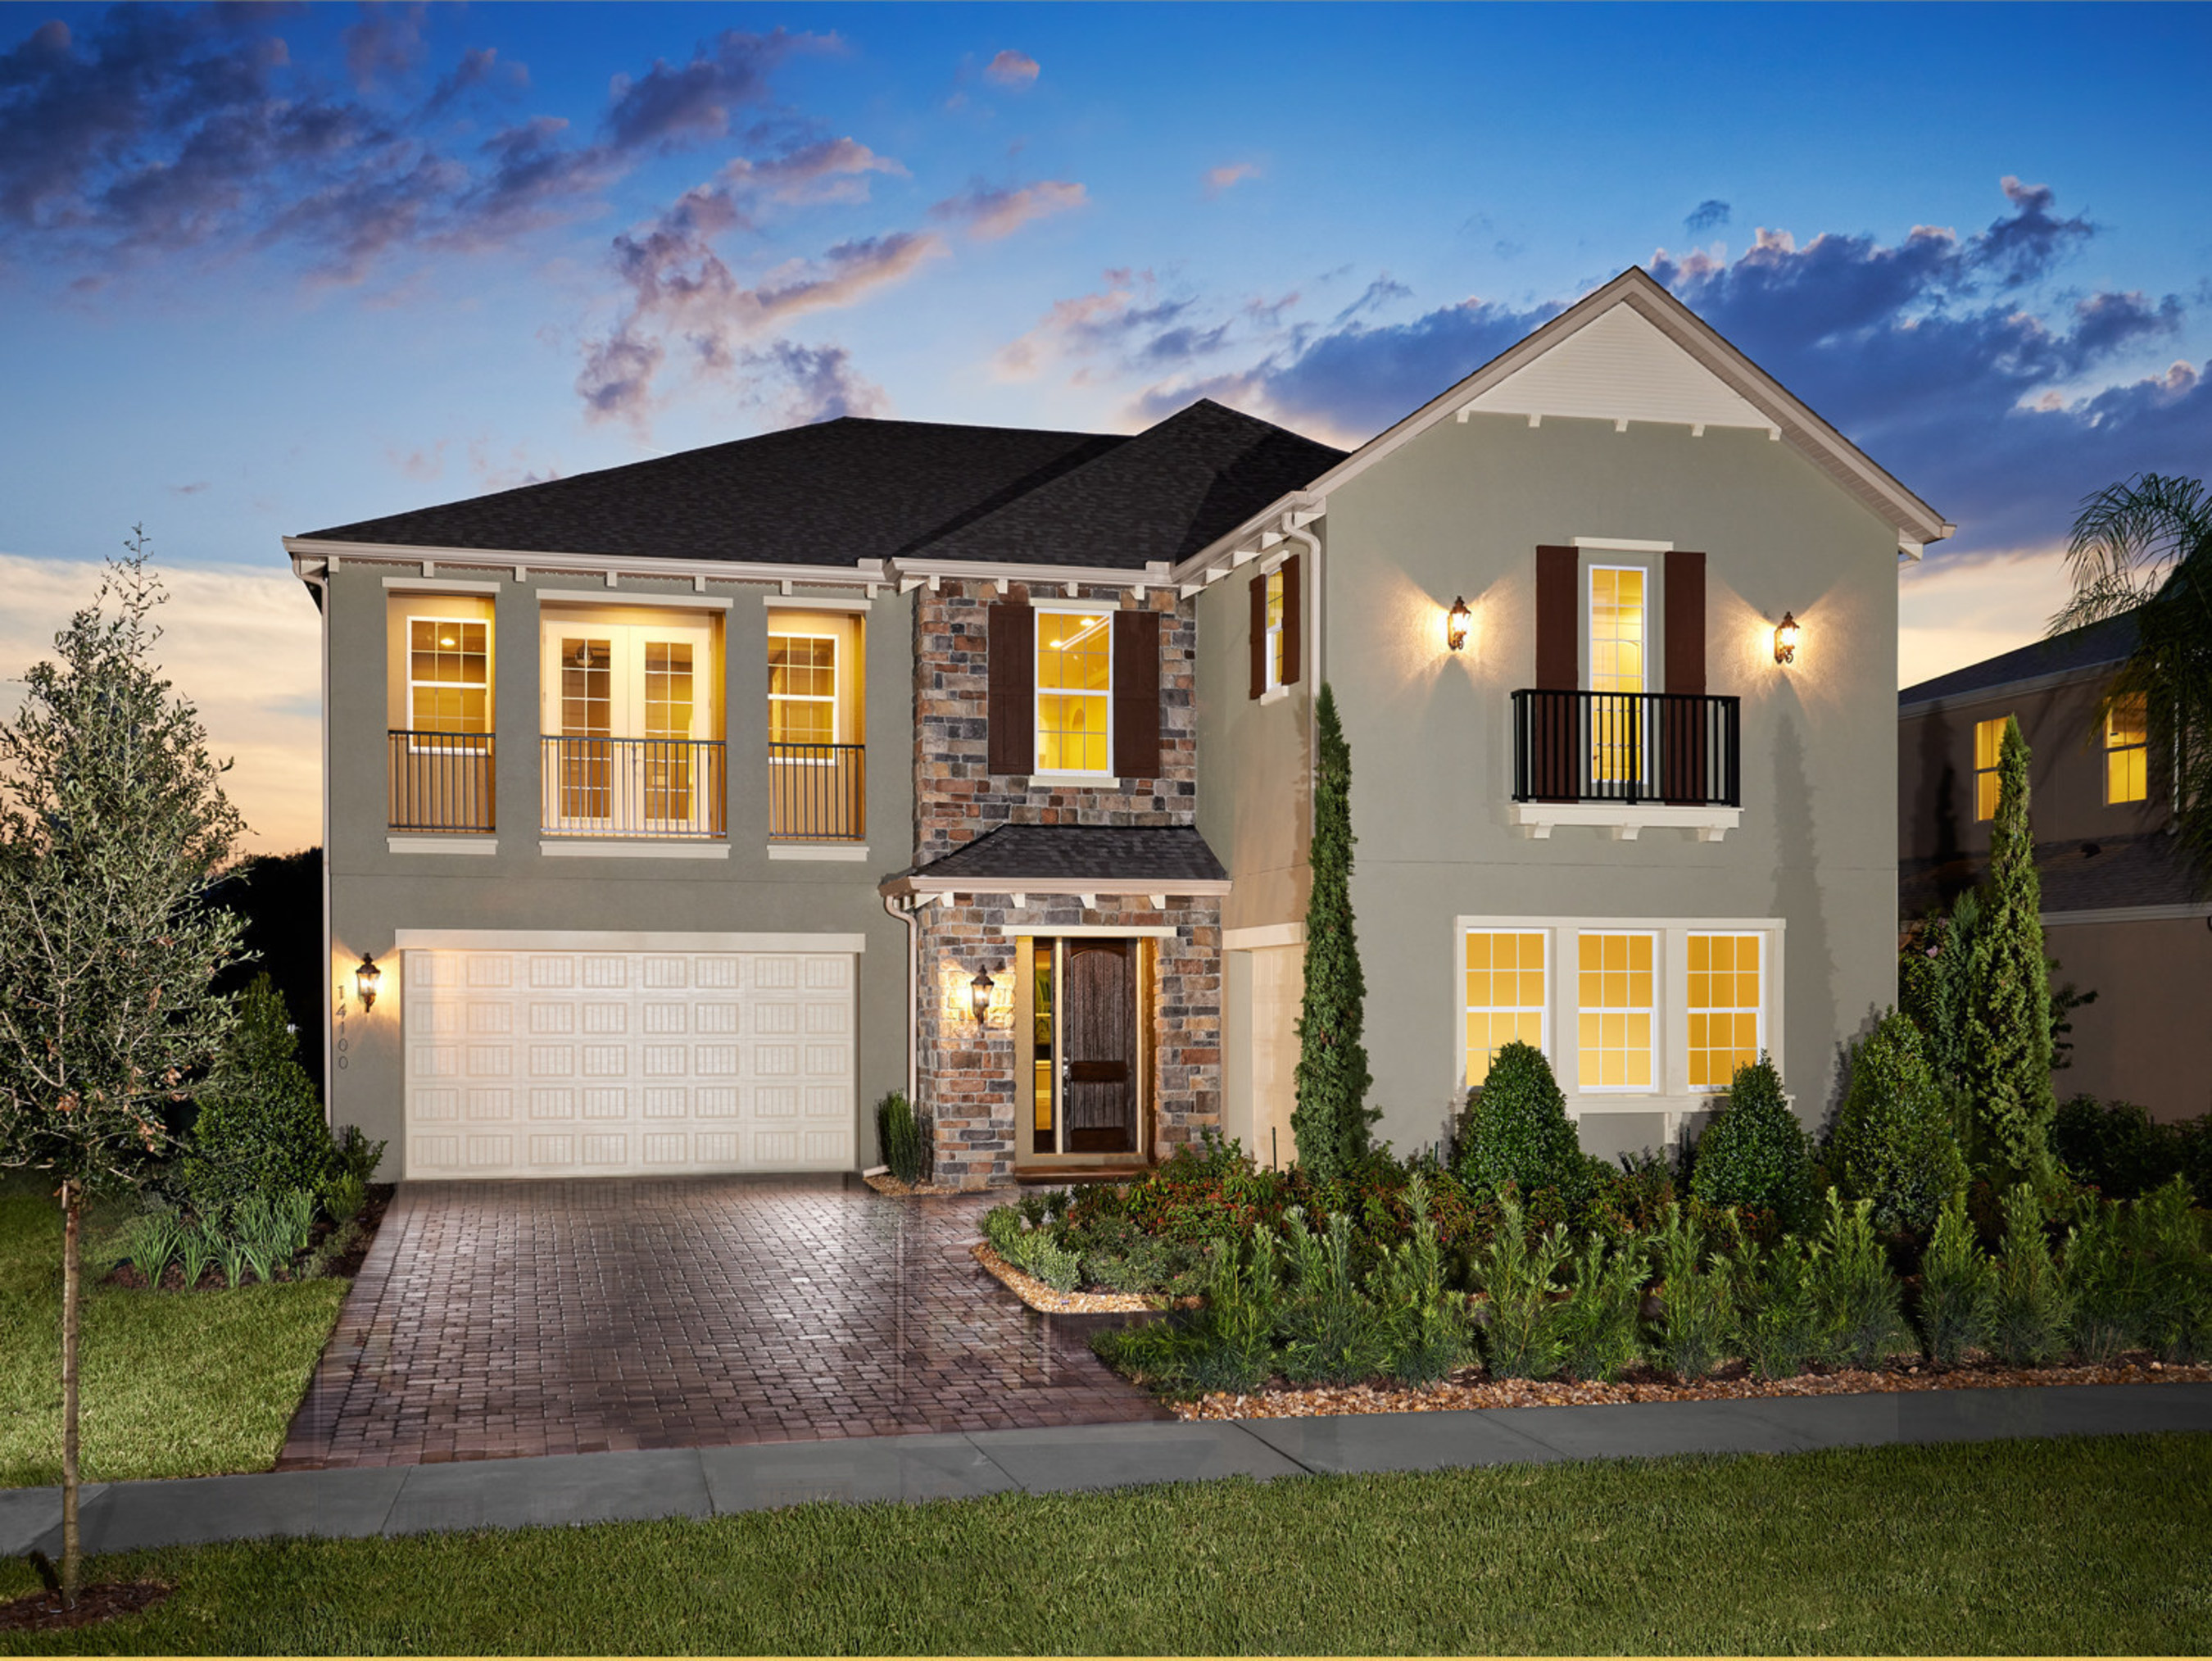 Standard pacific homes debuts new homes in winter garden for Standard homes plans